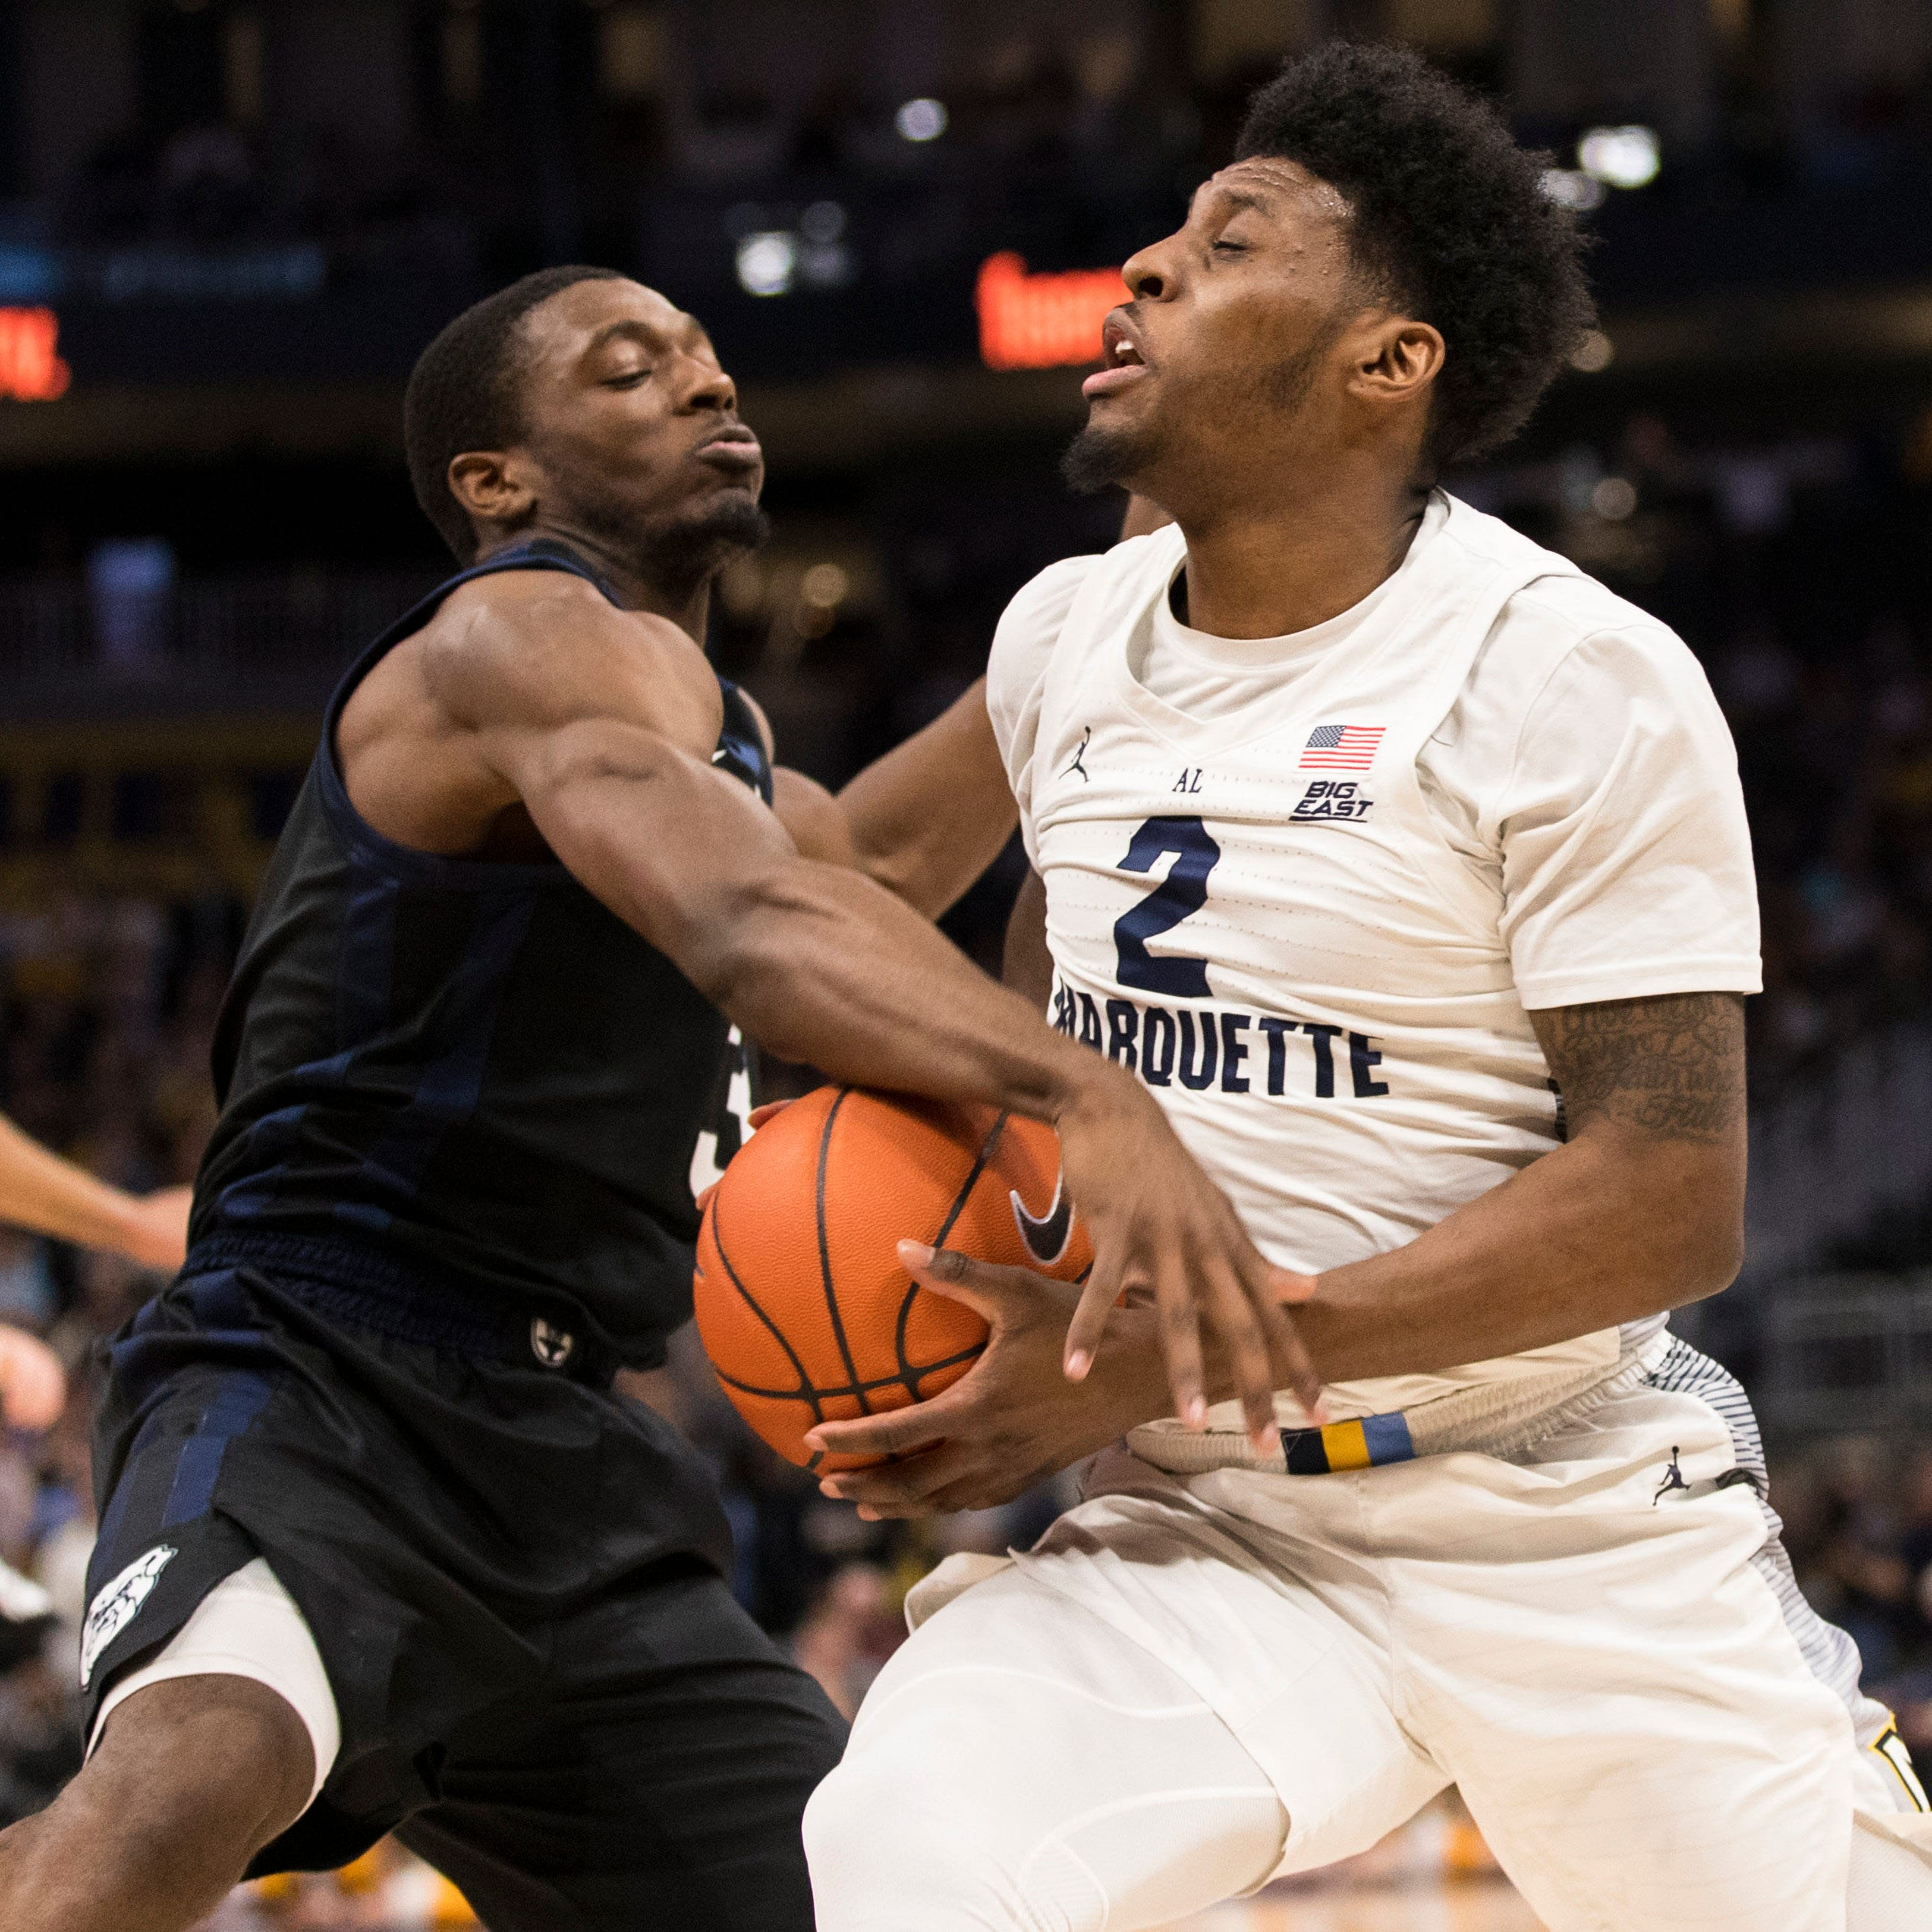 Loss at Marquette changes little for Butler, which is in peril of missing NCAA tourney